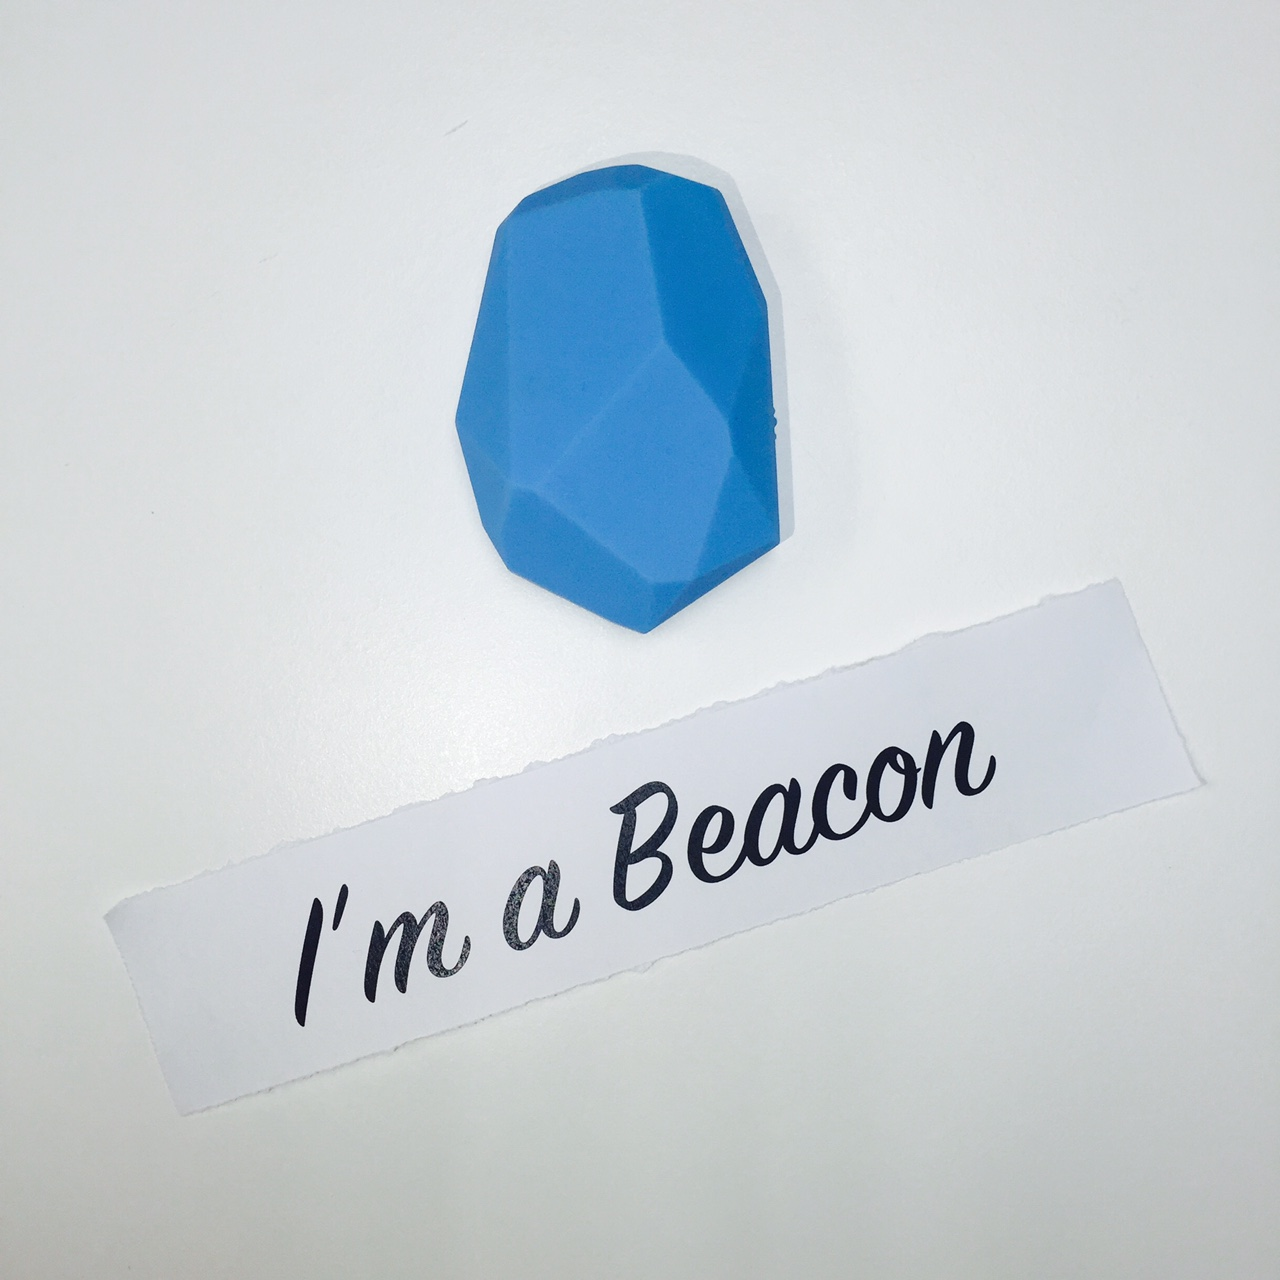 8 Fun Facts About The Ble Powered Beacon Timetec Blog